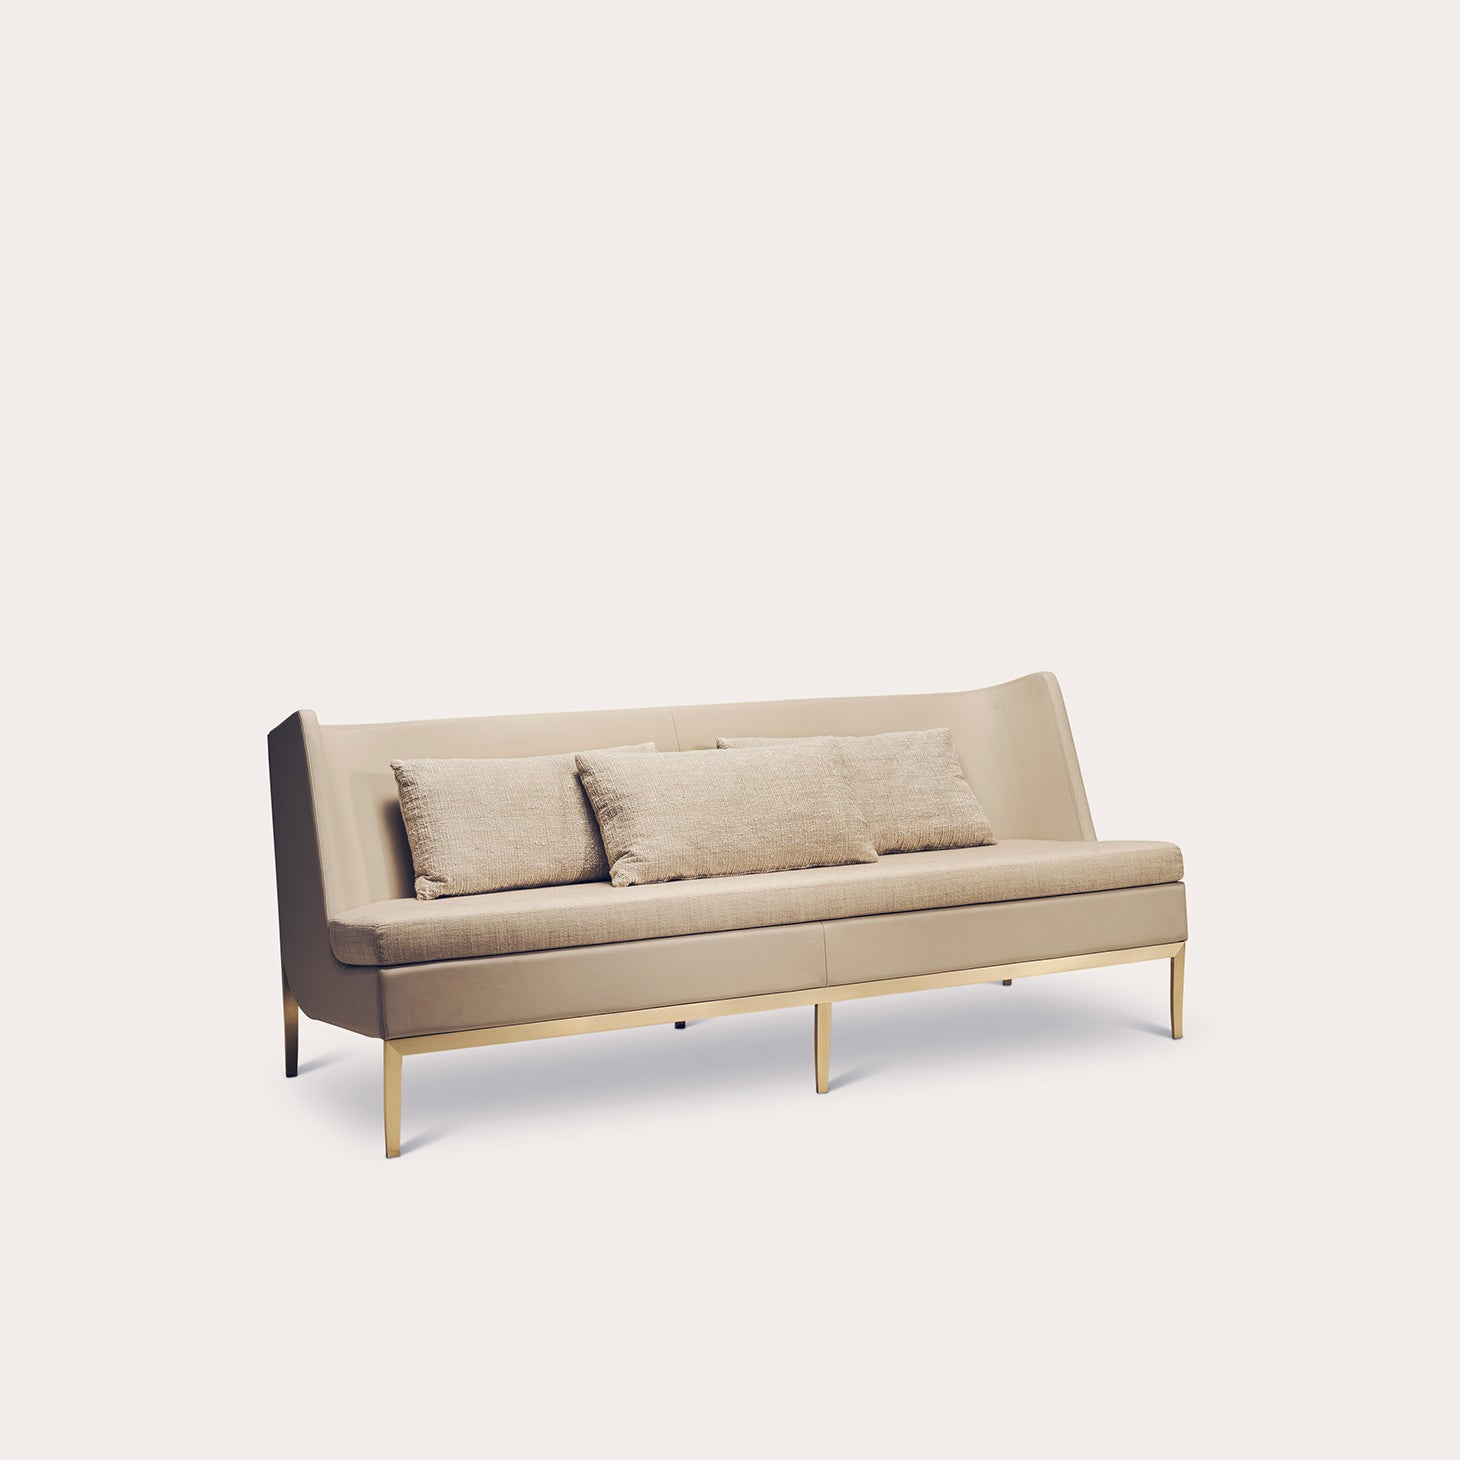 COURTRAI Sofa Seating Bruno Moinard Designer Furniture Sku: 773-240-10005